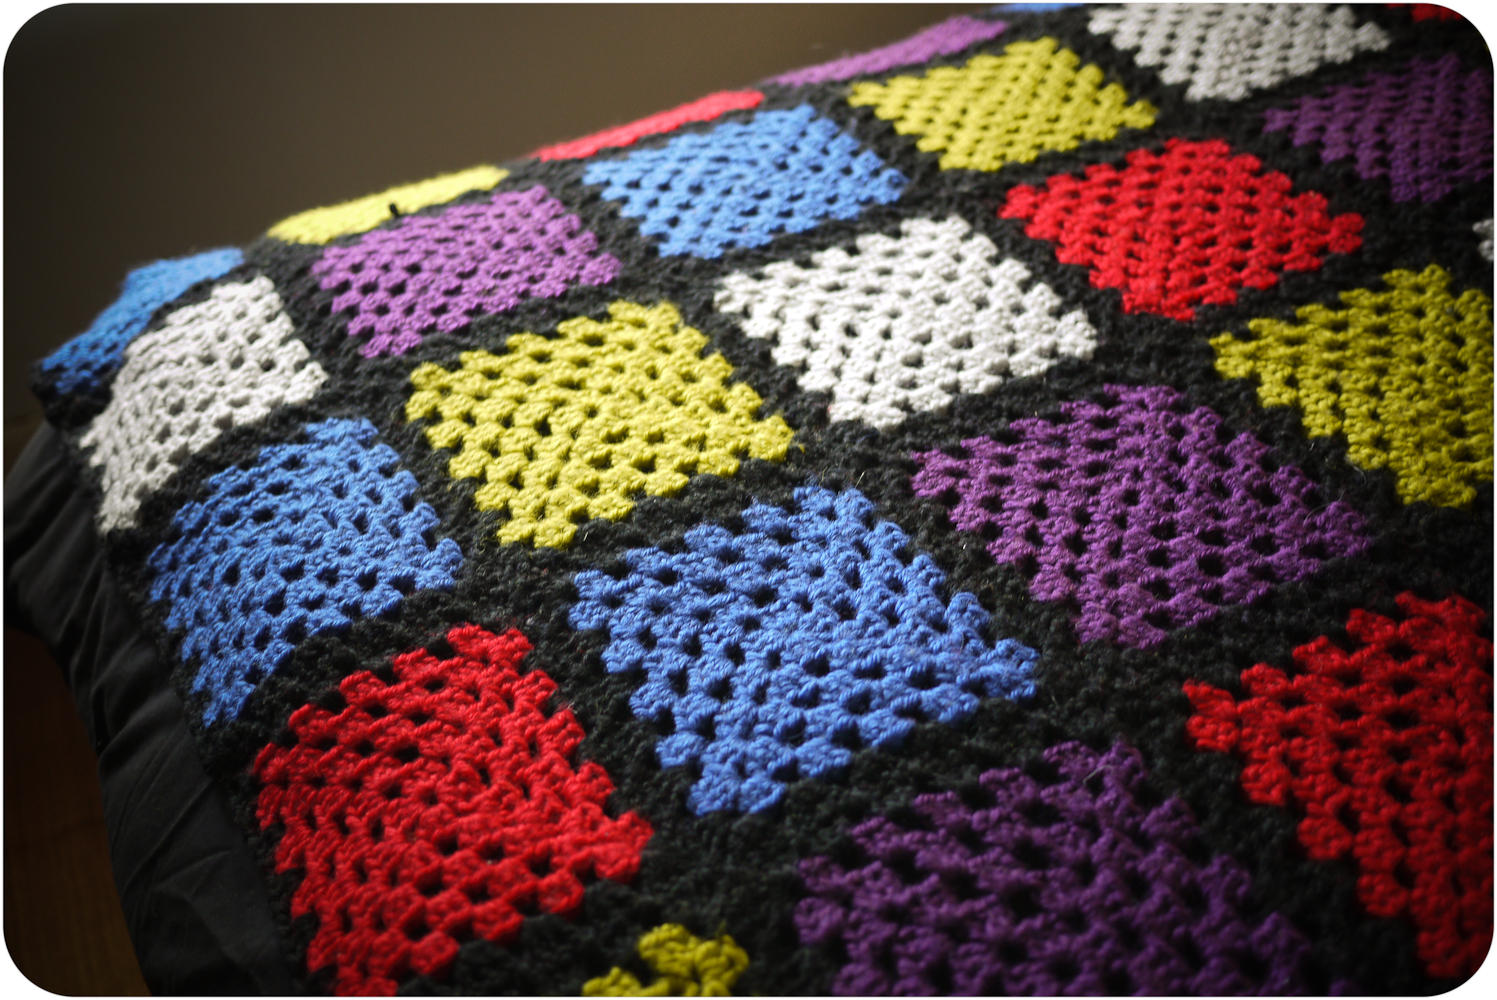 Crocheting Granny Square Blanket : ... watch, but 90 Granny Squares later heres my darling crochet blanket